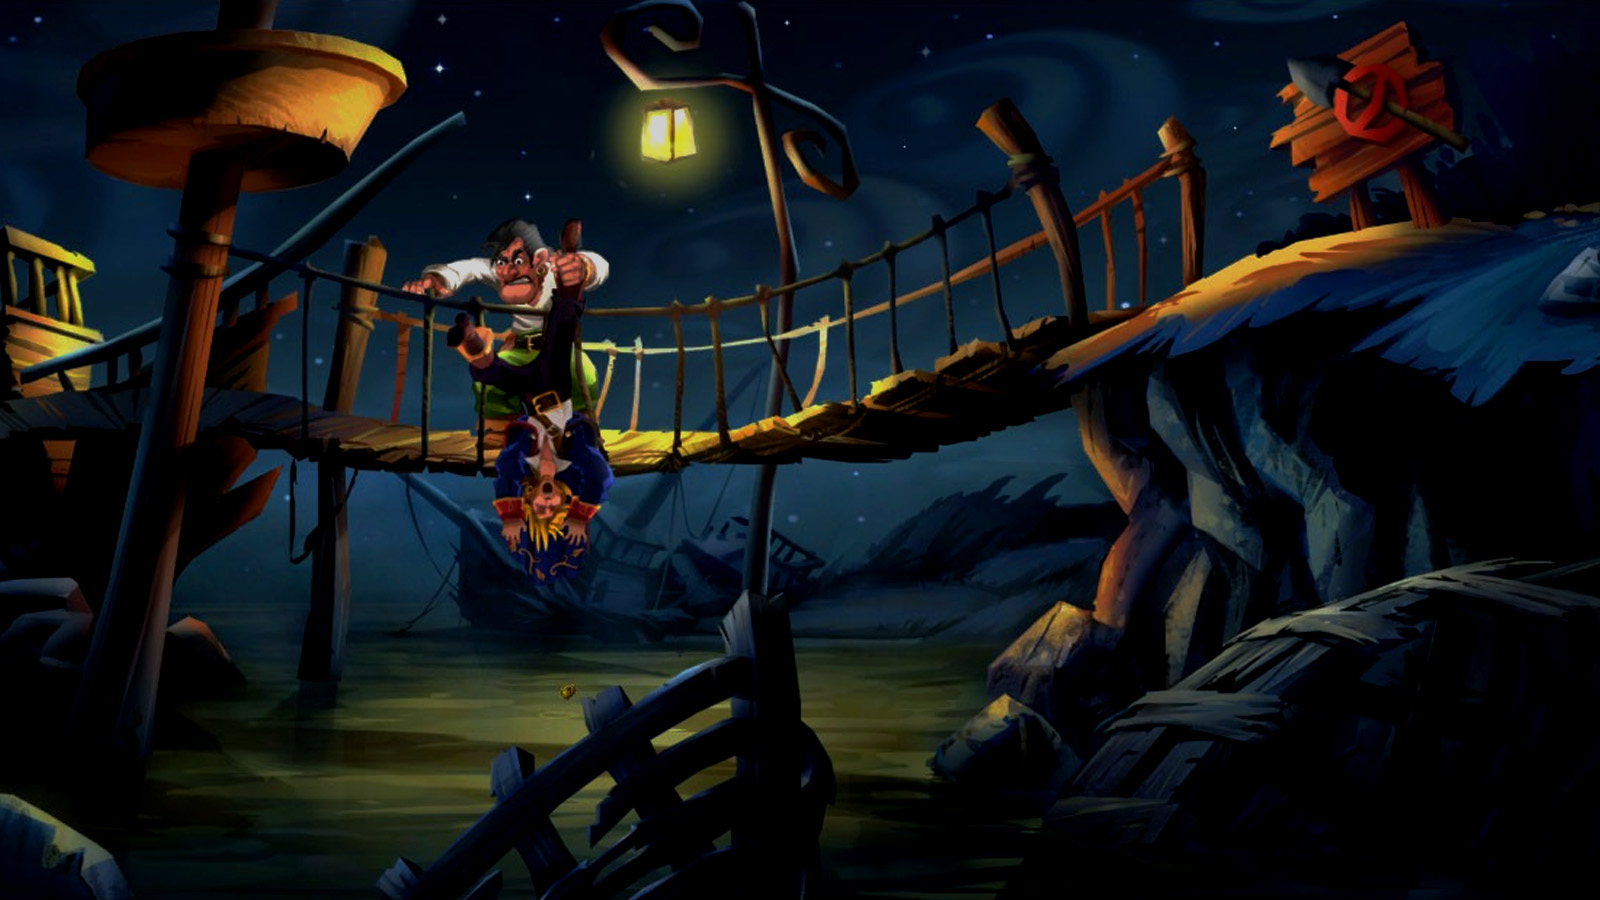 Uncharted Iphone Wallpaper Monkey Island Wallpaper And Background Image 1600x900